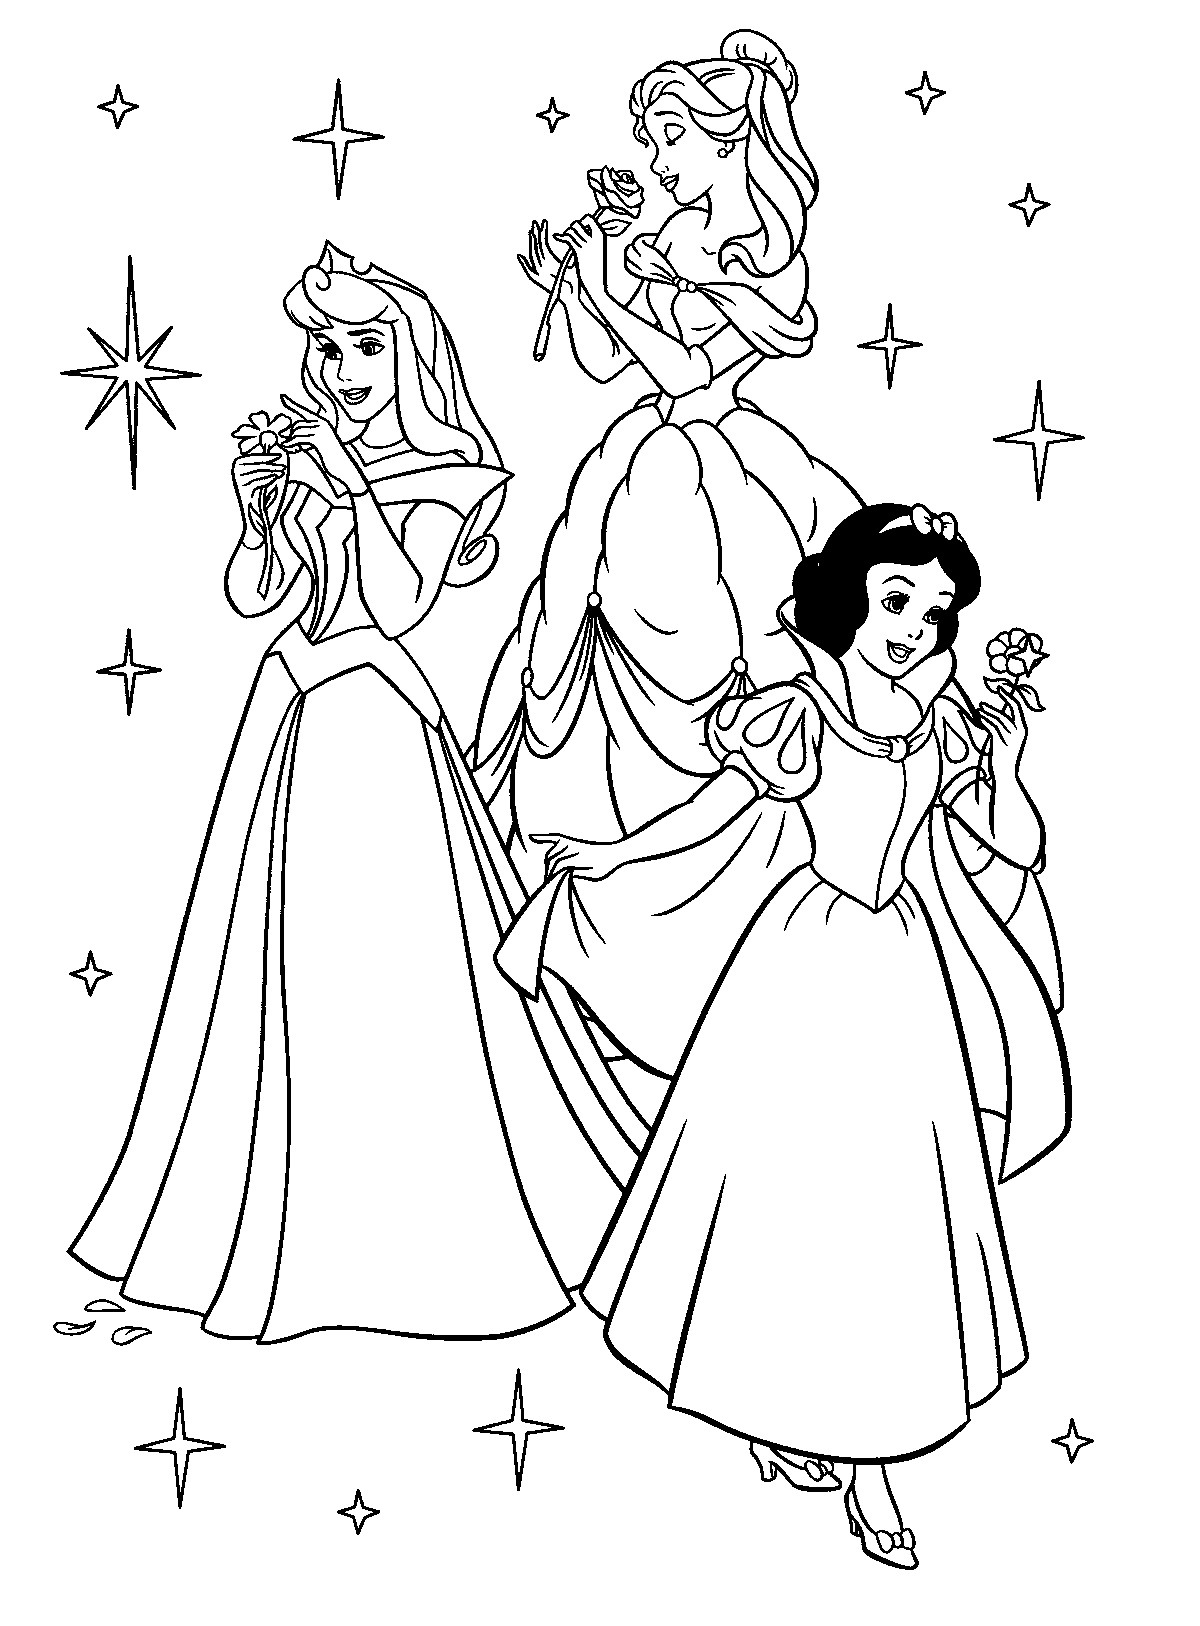 Coloring Book Pages Disney Princess  Free Printable Disney Princess Coloring Pages For Kids